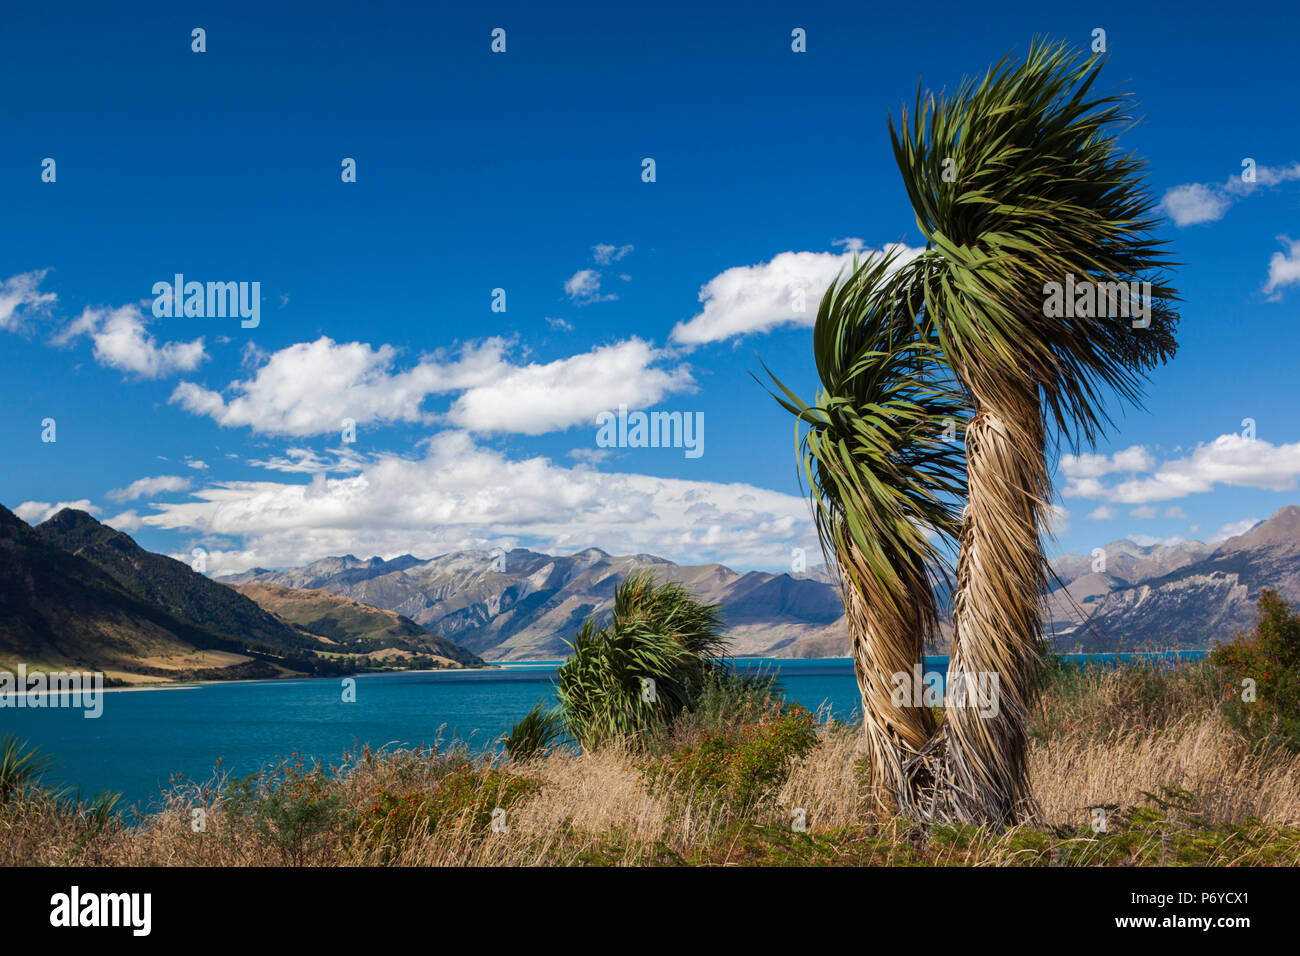 New Zealand, South Island, Otago, Wanaka-area, Lake Hawea - Stock Image